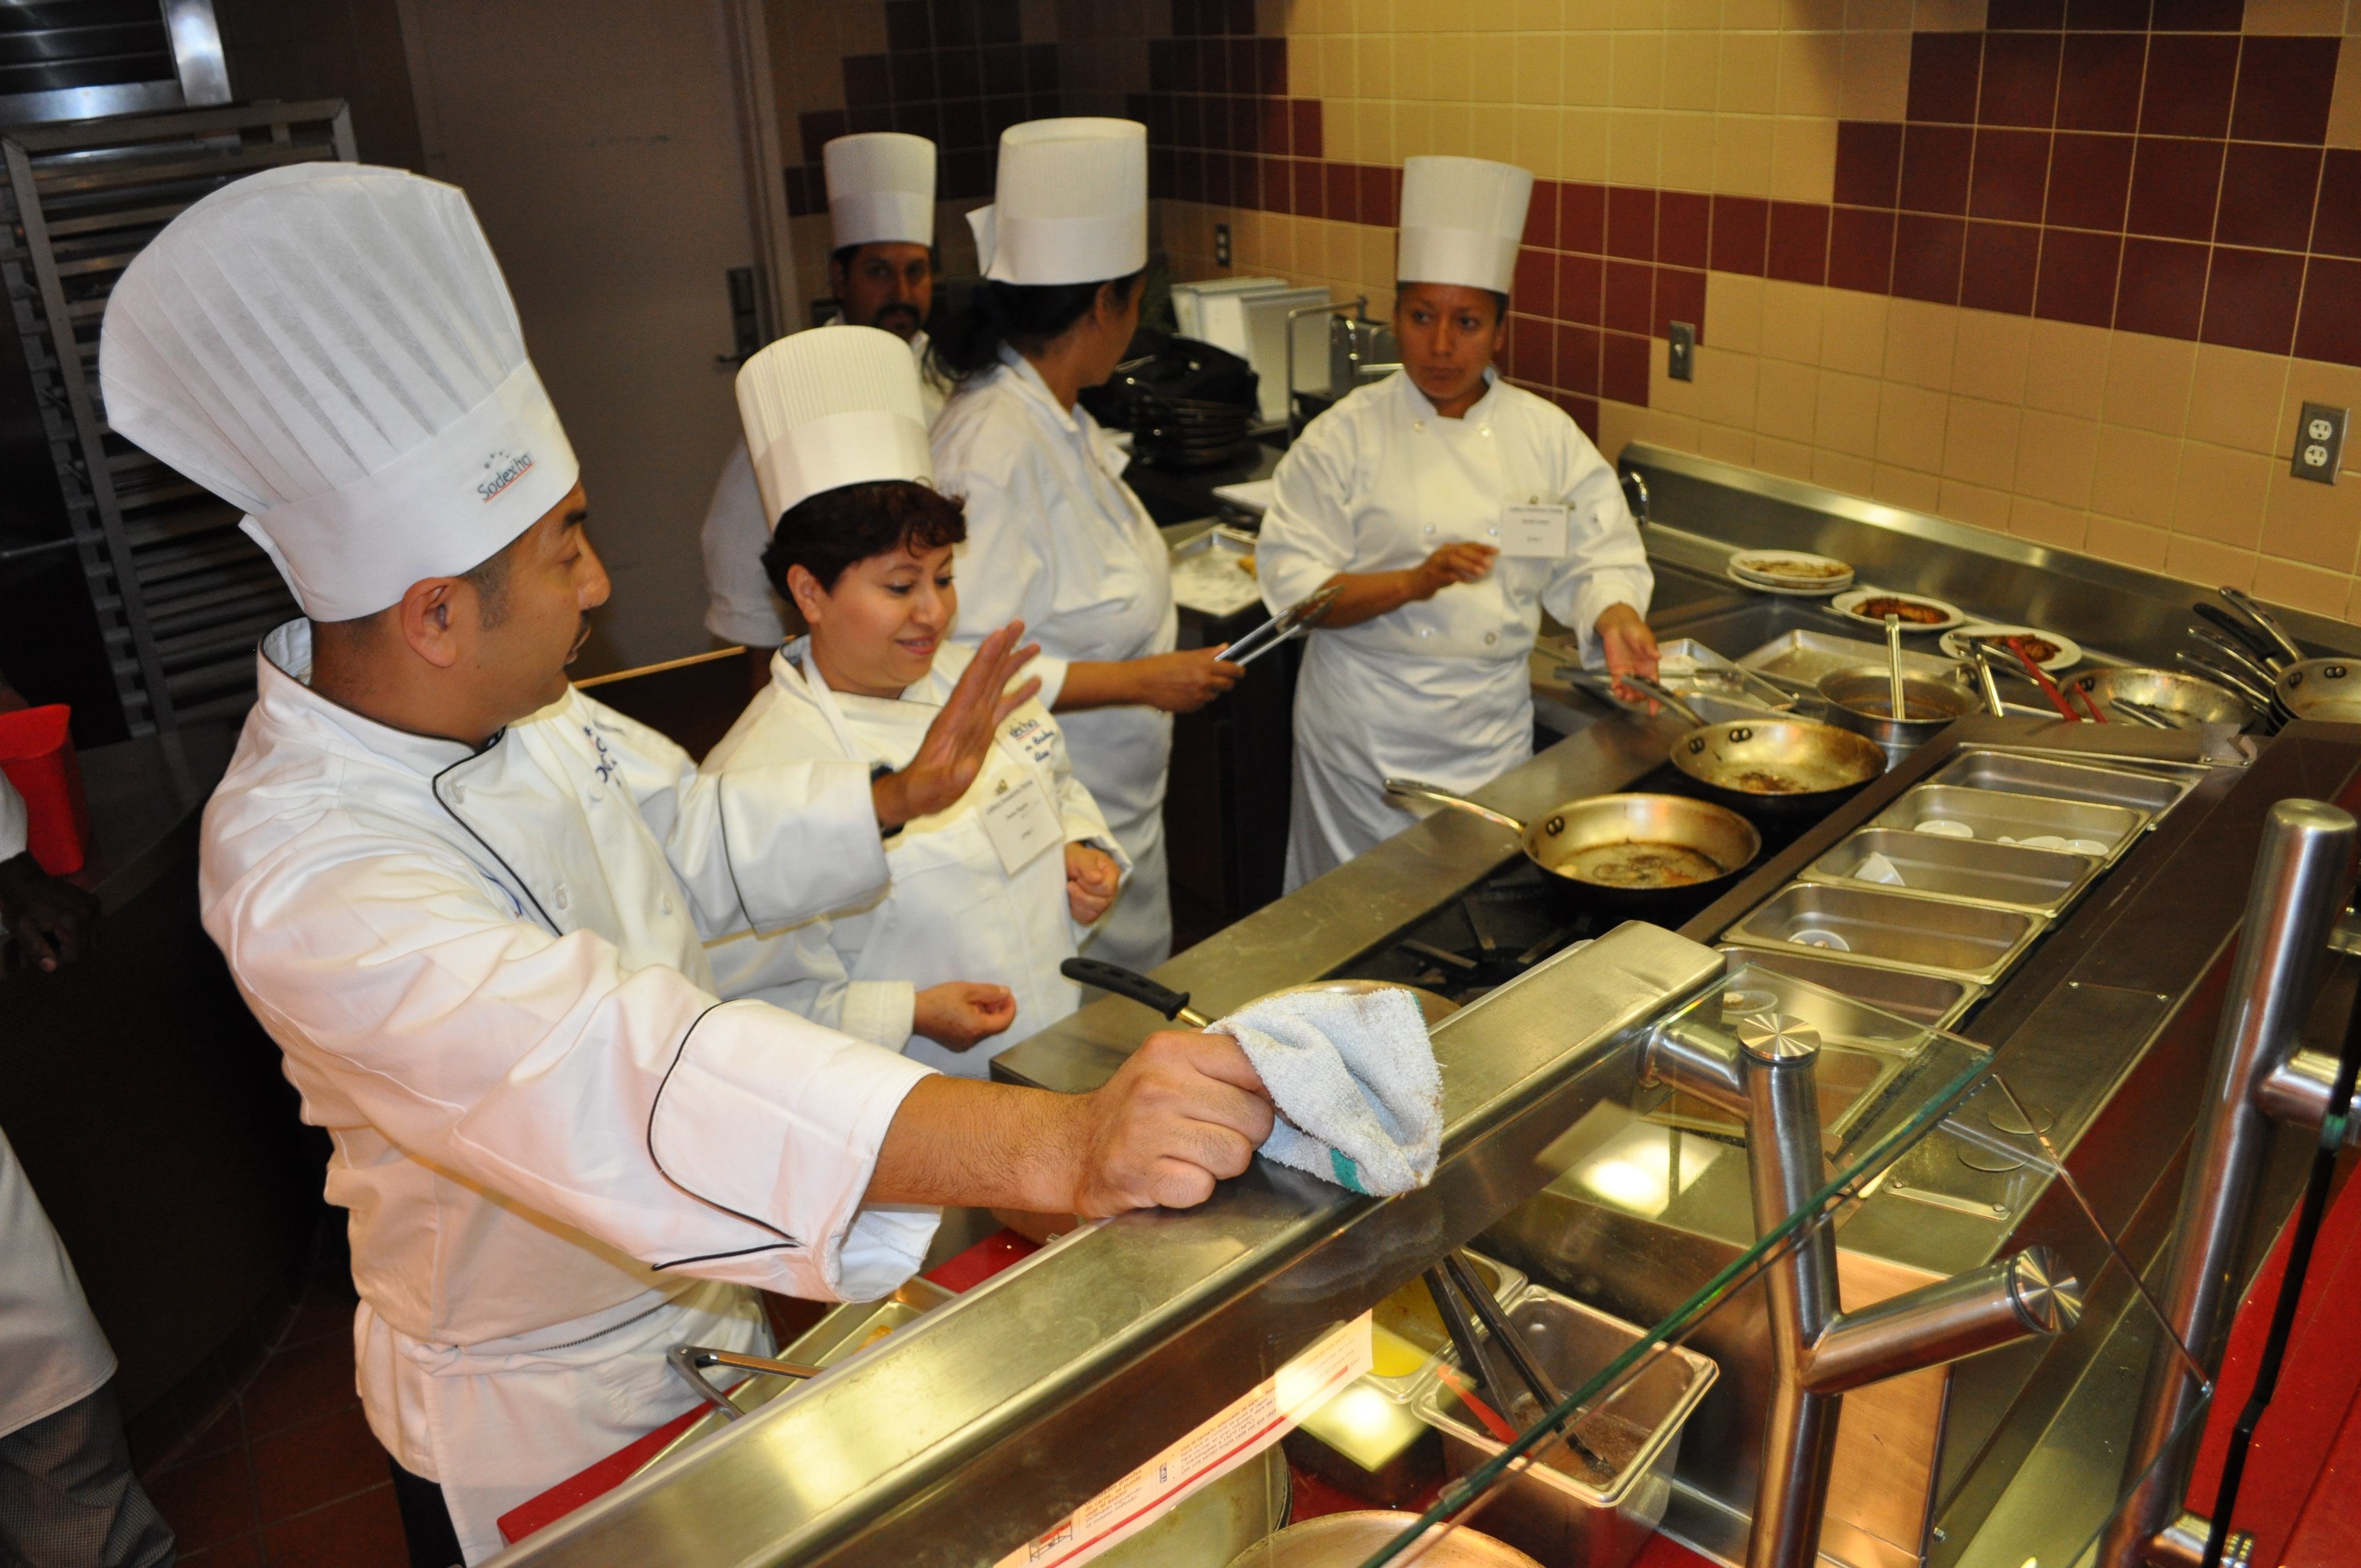 Saute skills sharpened at training in dining commons.